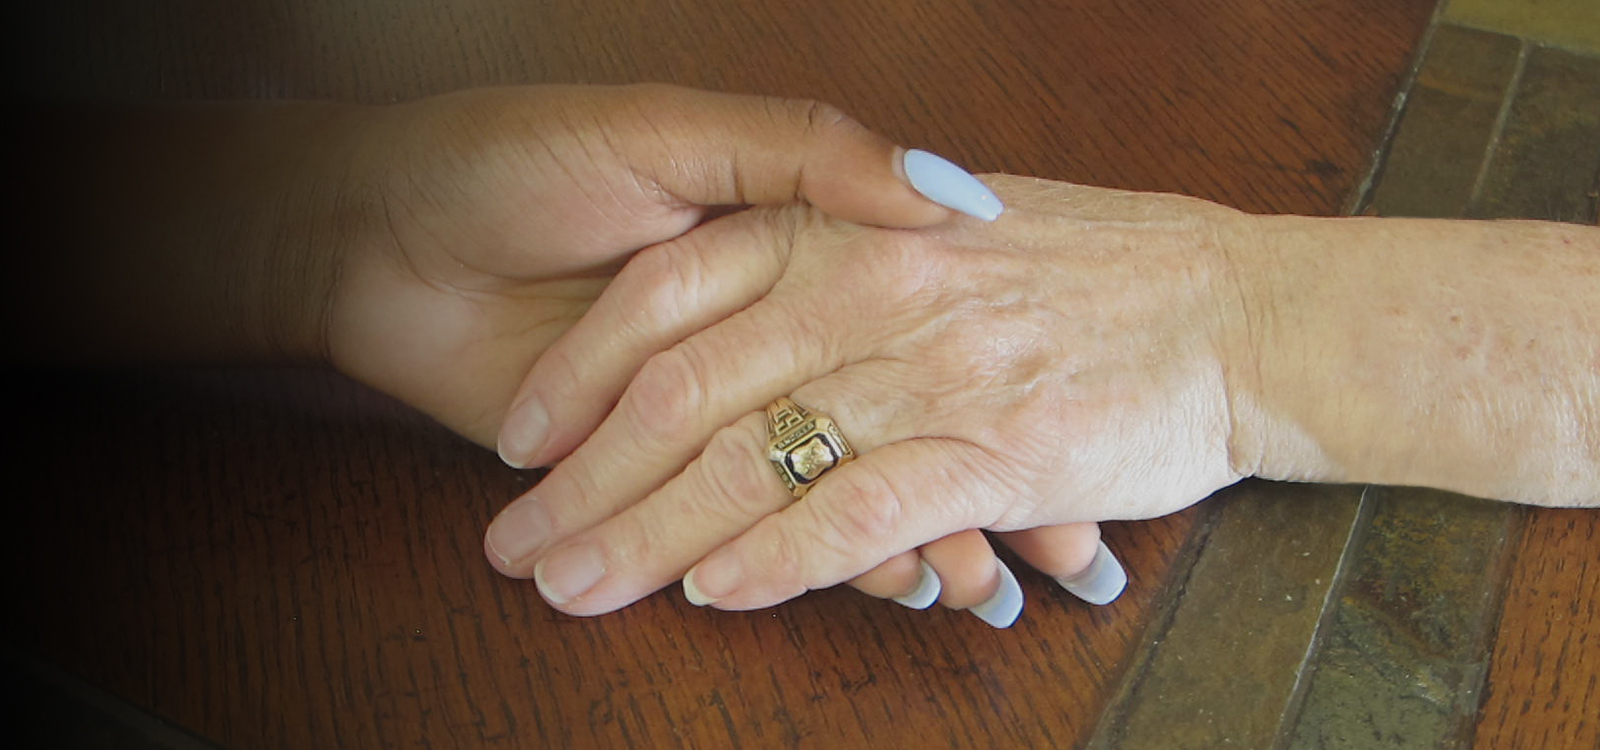 two peoples hands holding each other